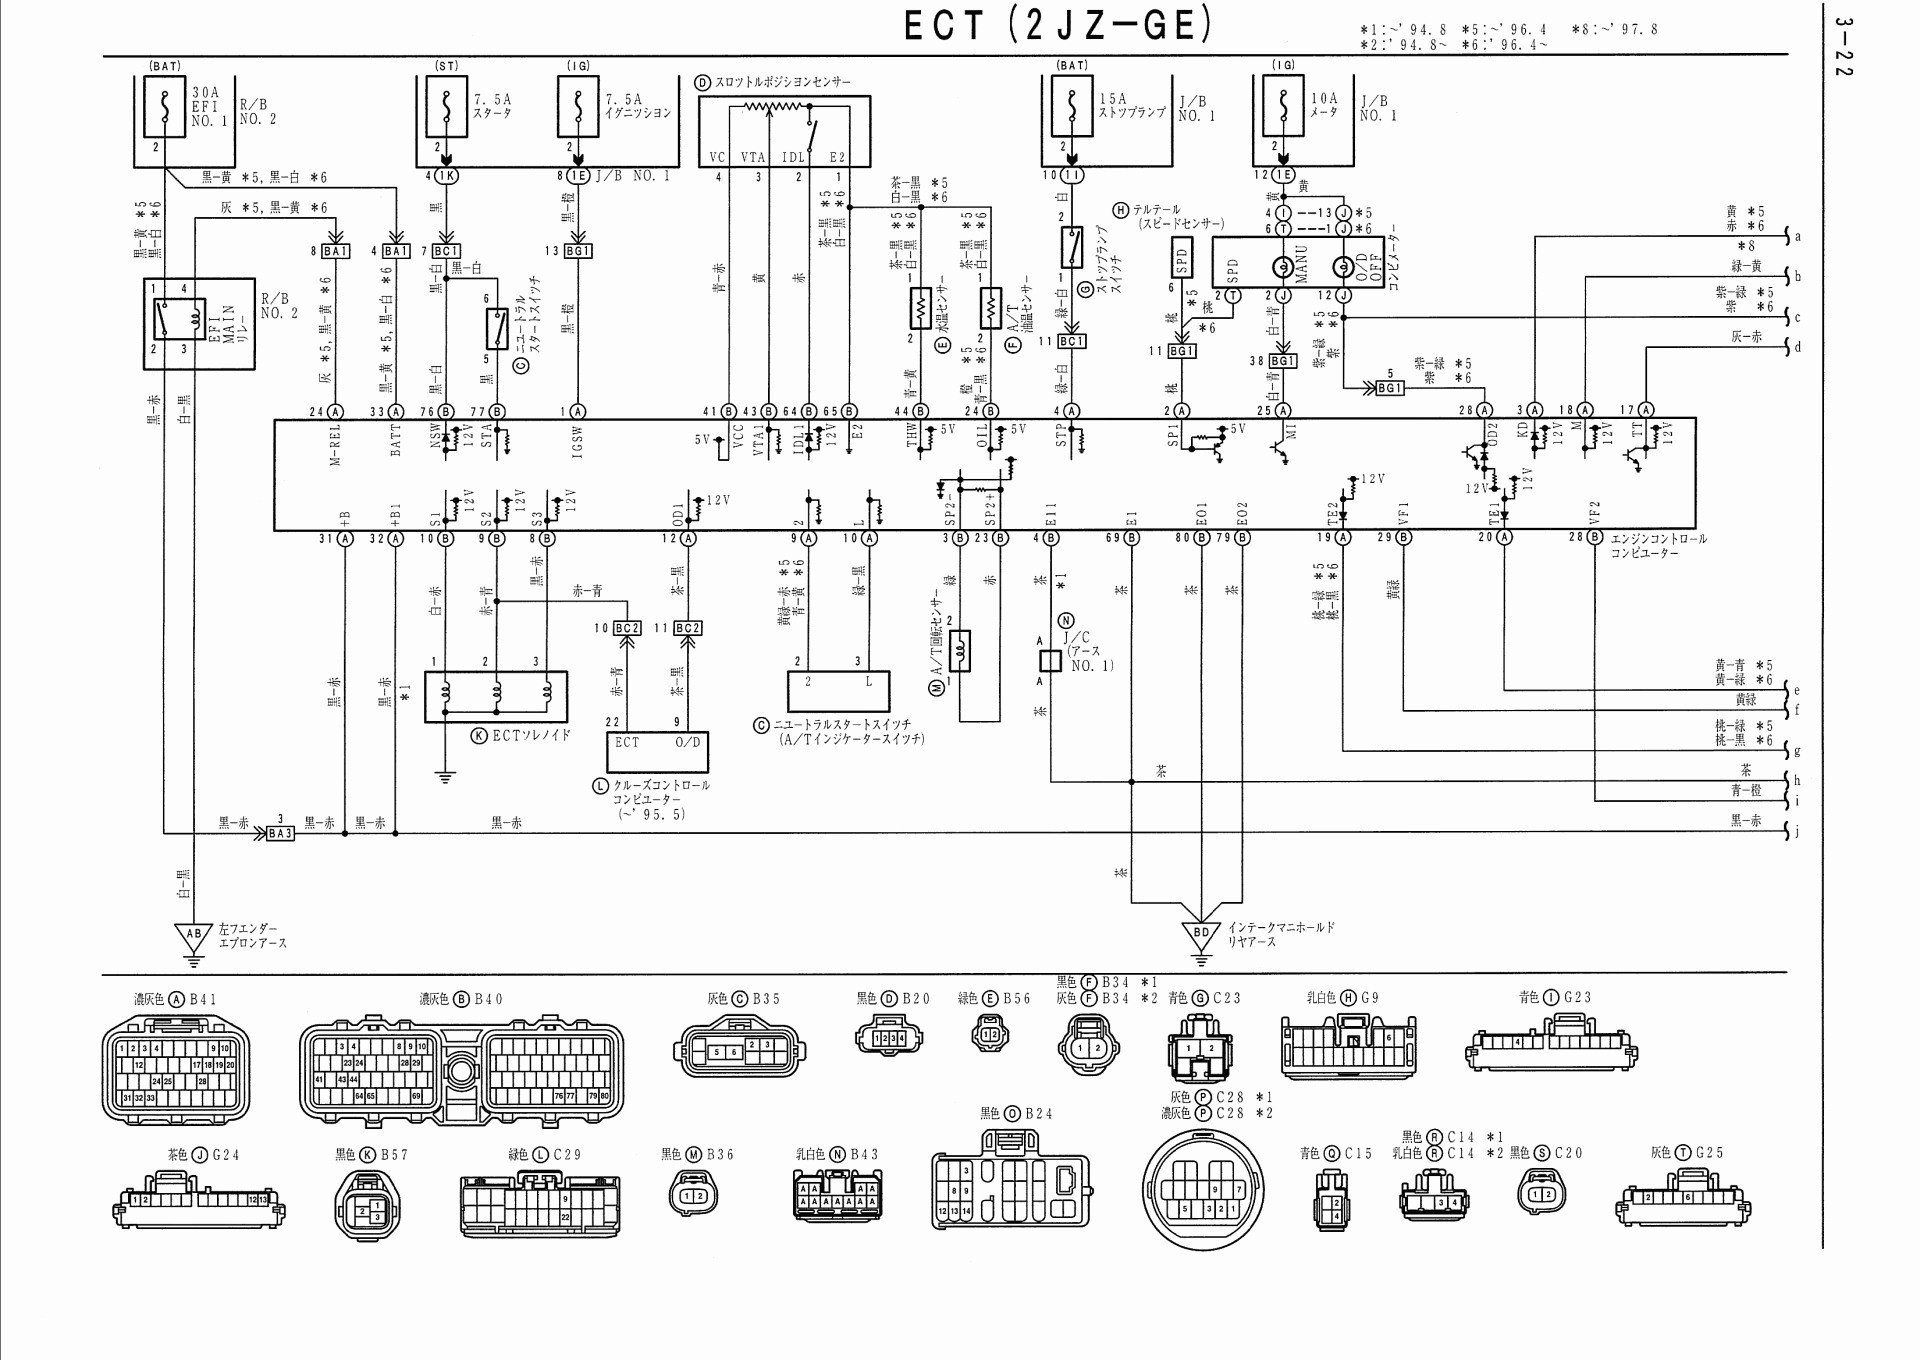 [SCHEMATICS_44OR]  DIAGRAM] 2000 Bmw 323i Stereo Wiring Diagram FULL Version HD Quality Wiring  Diagram - K9AYSCHEMATIC6742.BEAUTYWELL.IT | 2000 Bmw 323i Radio Antenna Wiring Diagram |  | k9ayschematic6742.beautywell.it